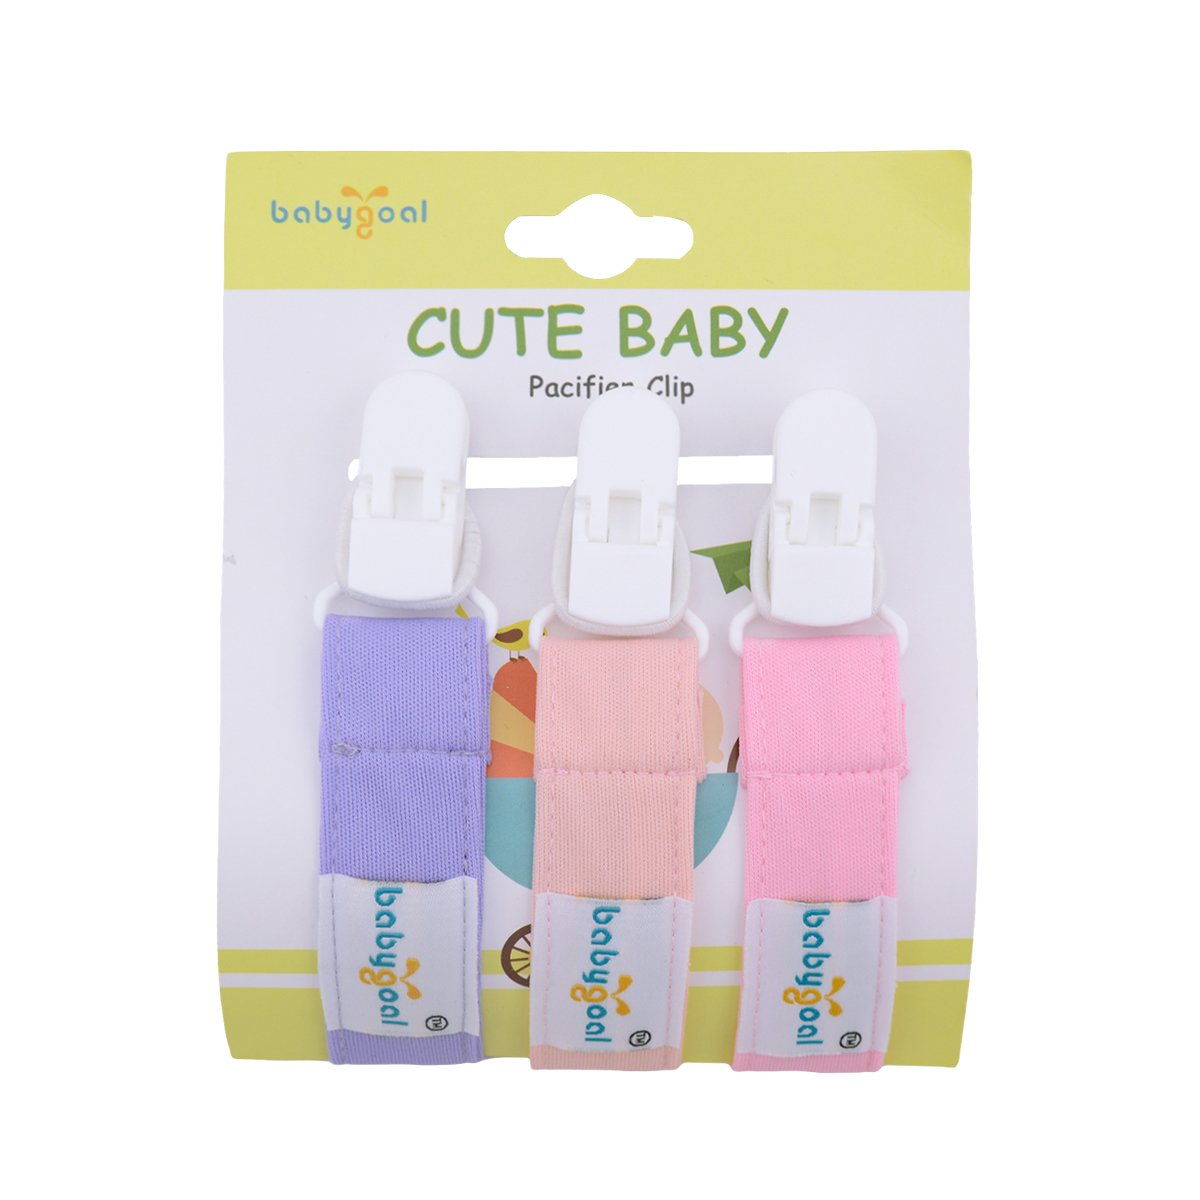 Babygoal Silicone Pacifier Clip Soothie and Baby Shower Gift 2GJL03-HZ-CA 2 Pack Pacifier Holders,Teething Beads with Pacifier Case for Boys and Girls Fits Most Pacifier Styles,Teething Toys